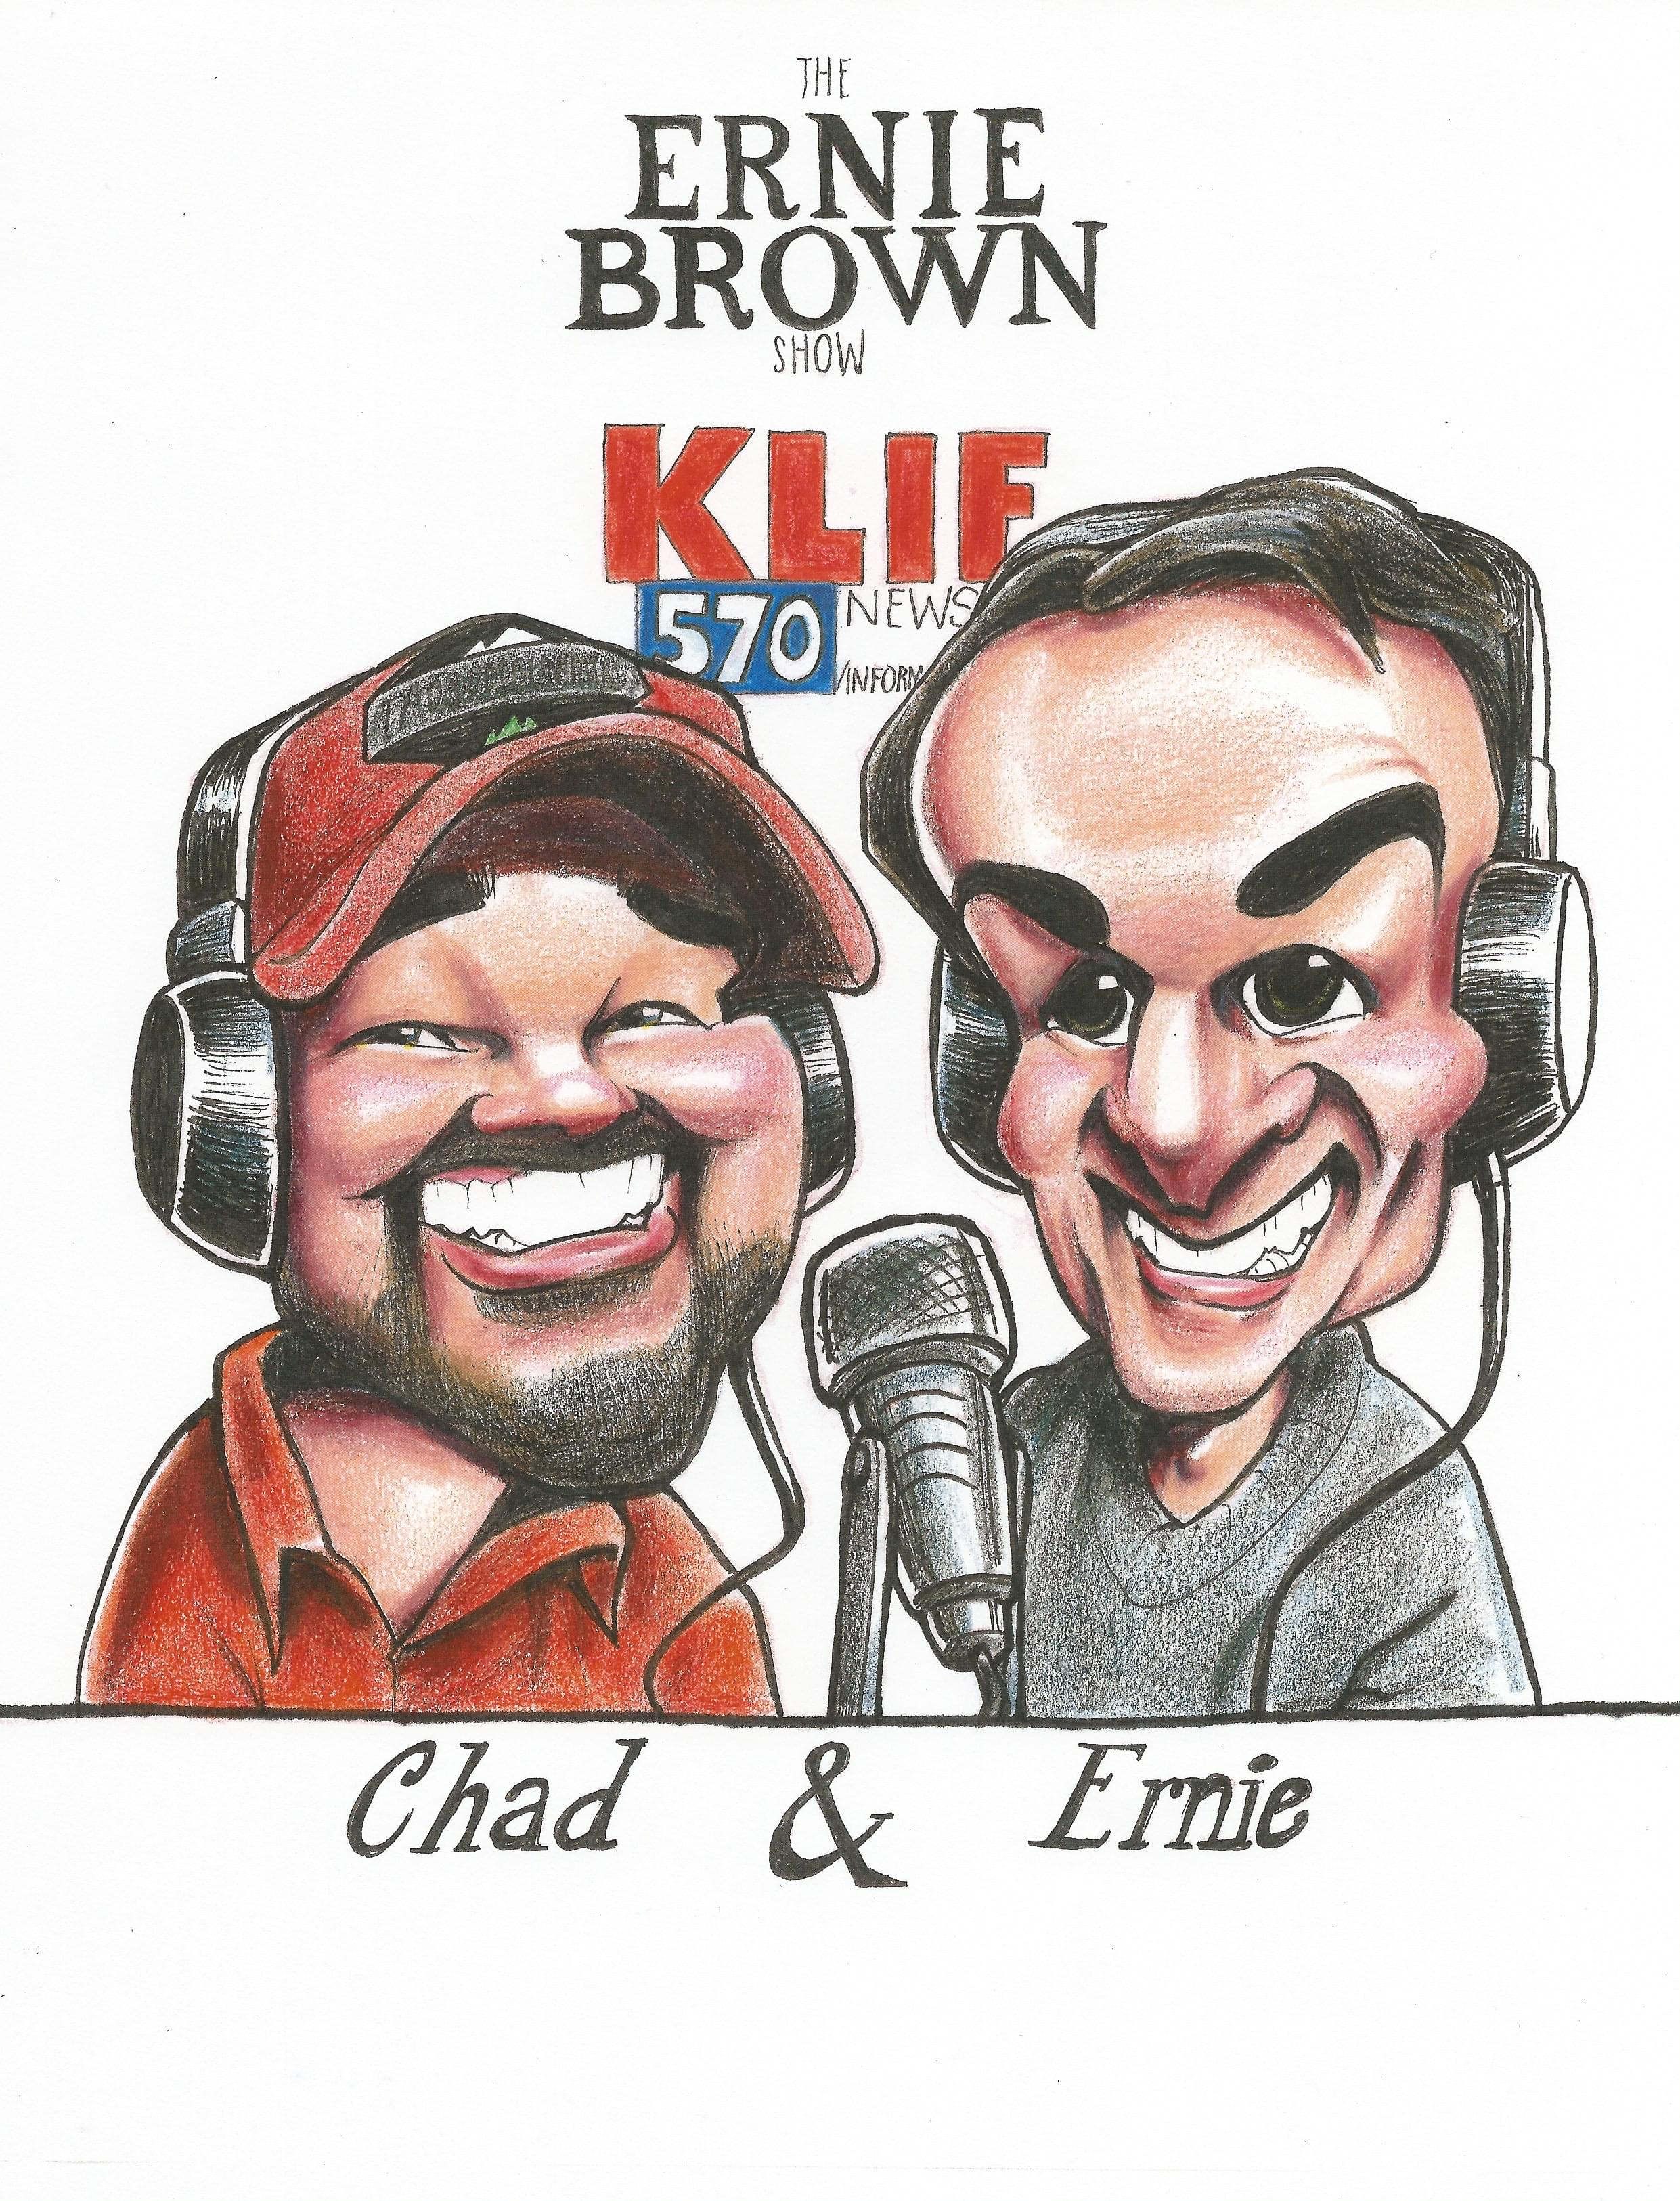 The Ernie Brown Show: Trending Topix for Tuesday